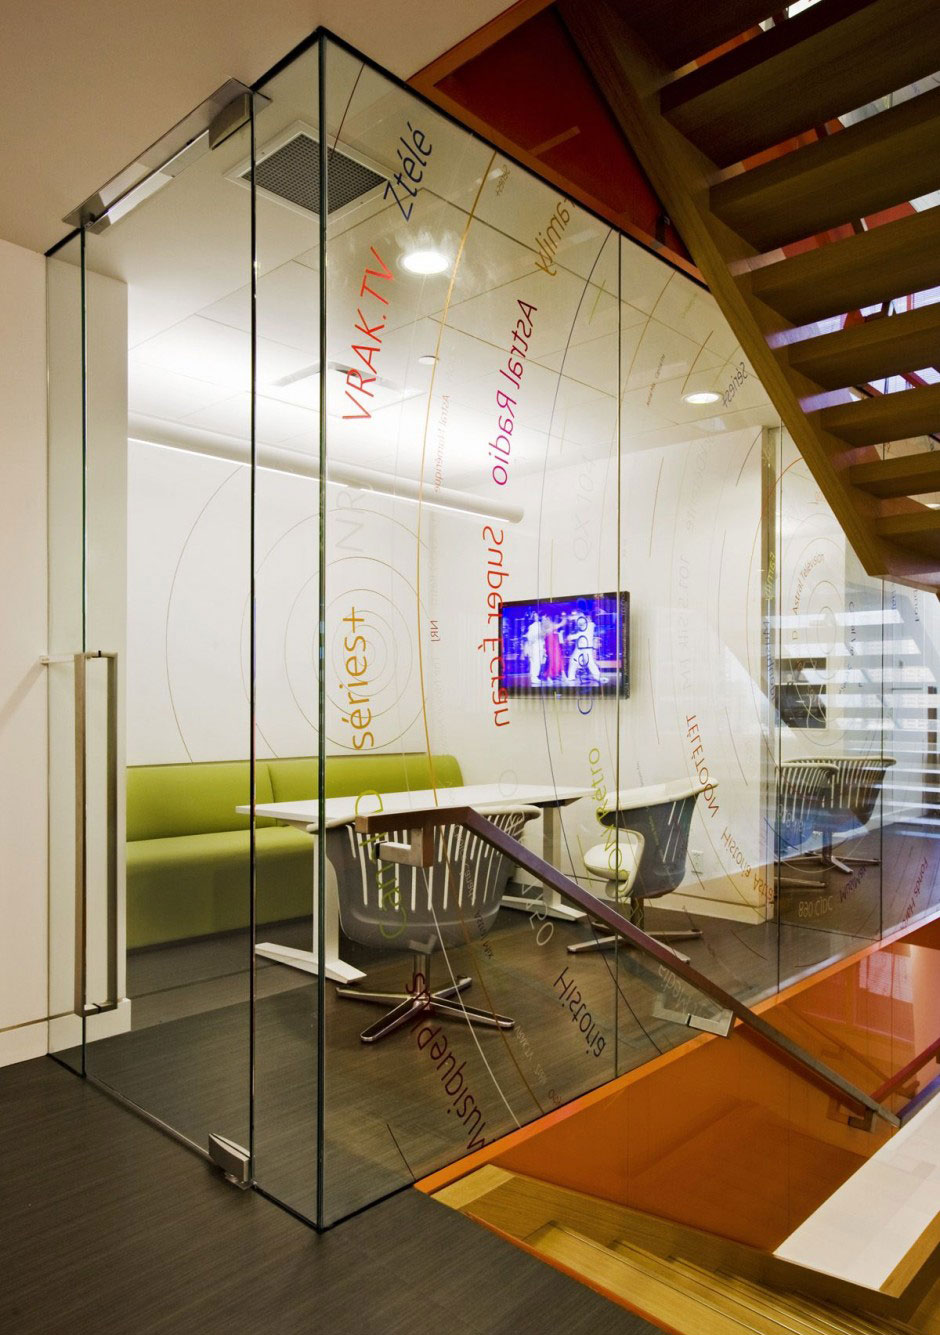 Lcd Tv Furnitures Designs Ideas: Cool Office Lounge With LCD TV And Couch Ideas